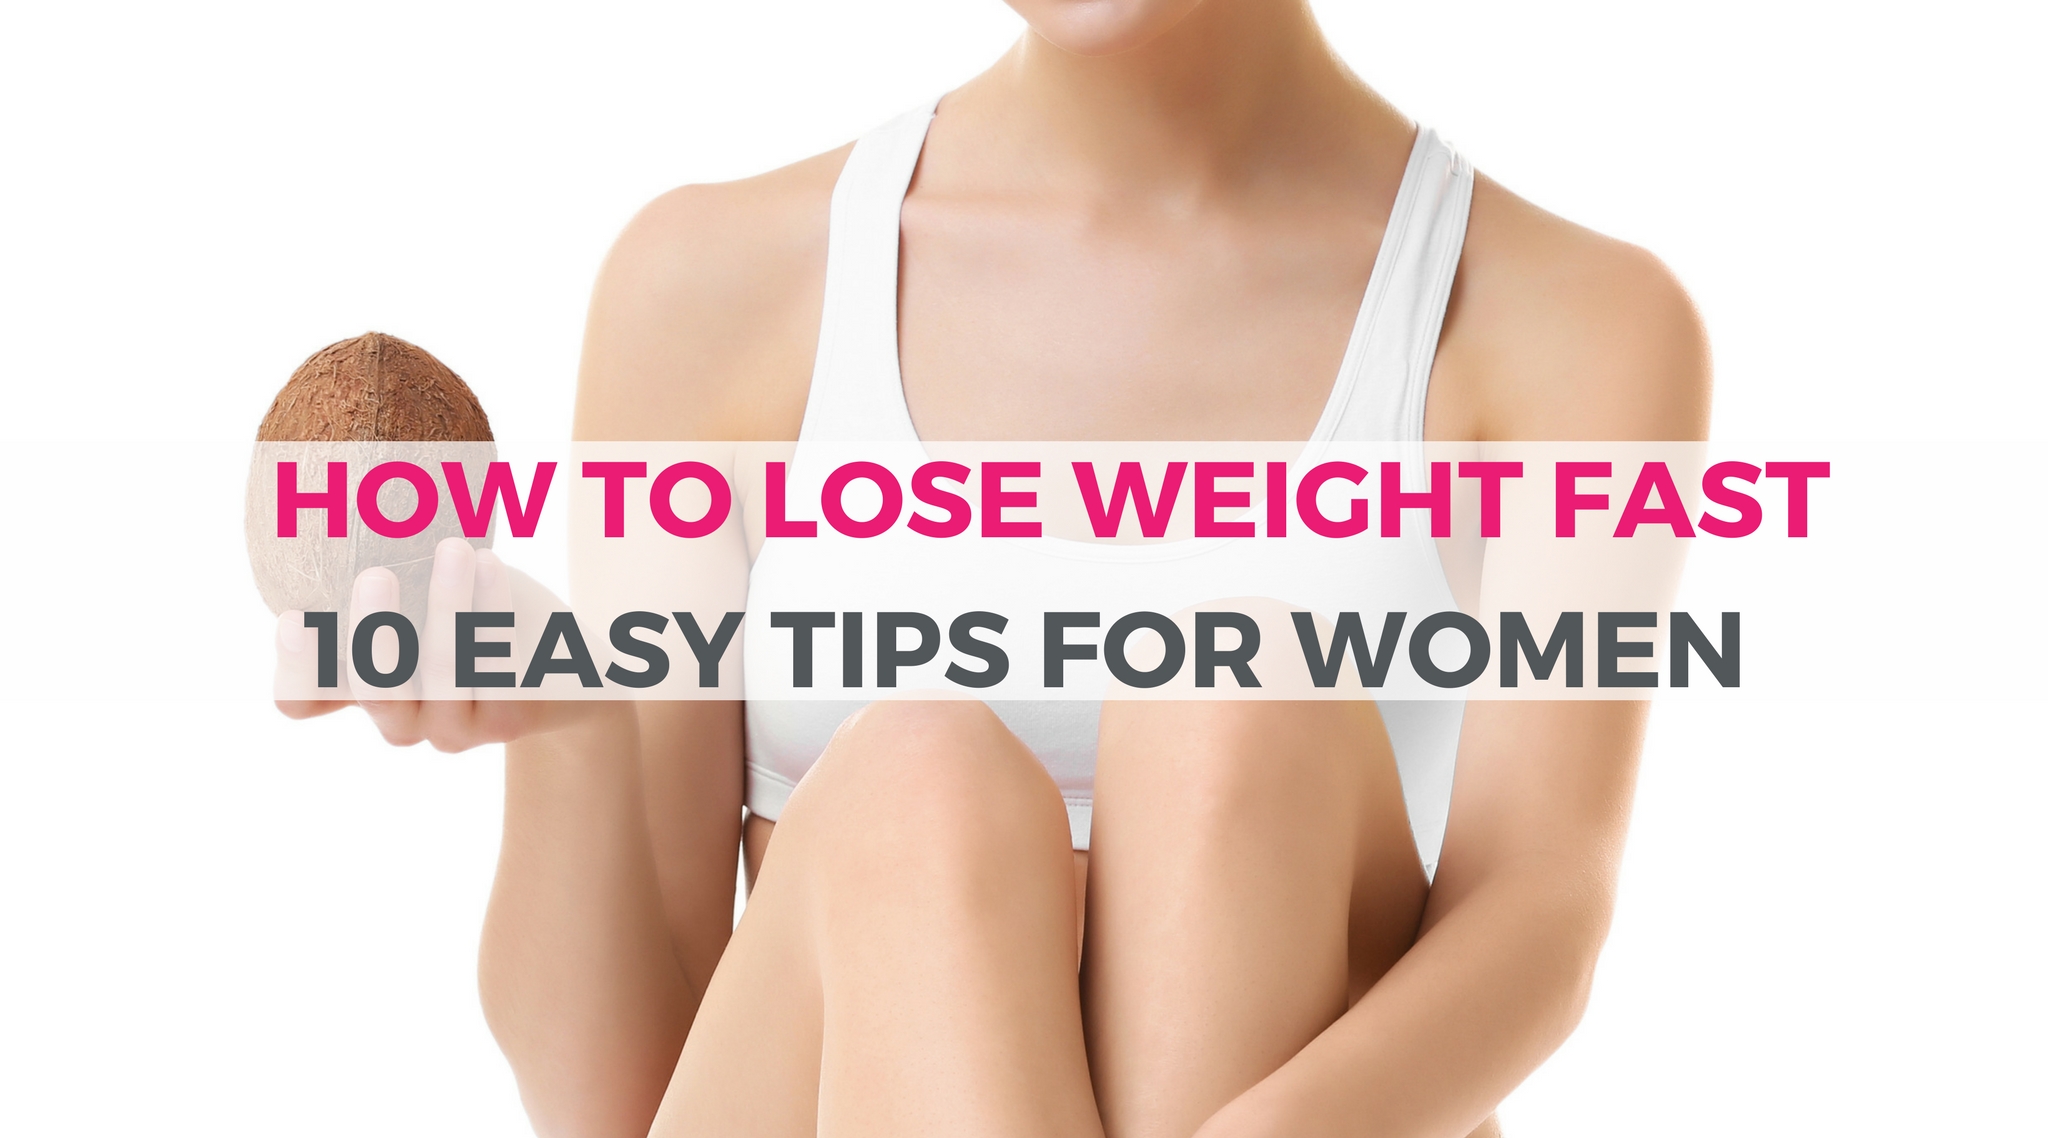 How To Lose Weight Fast In 1 Week 10 Easy Tips For Women